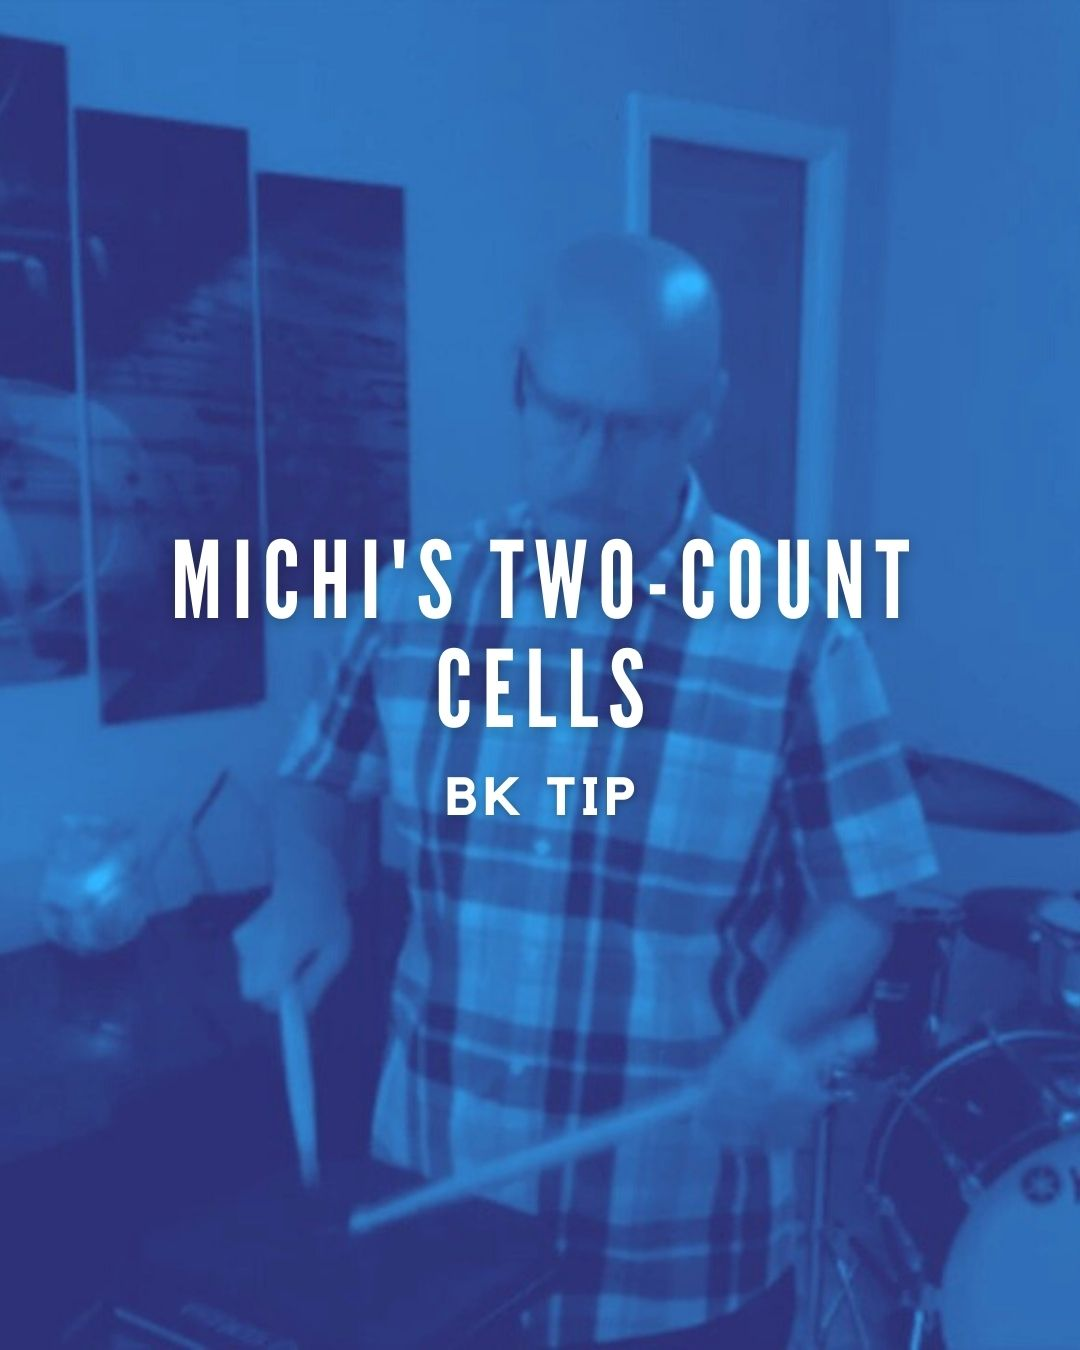 Michi's Two-count Cells